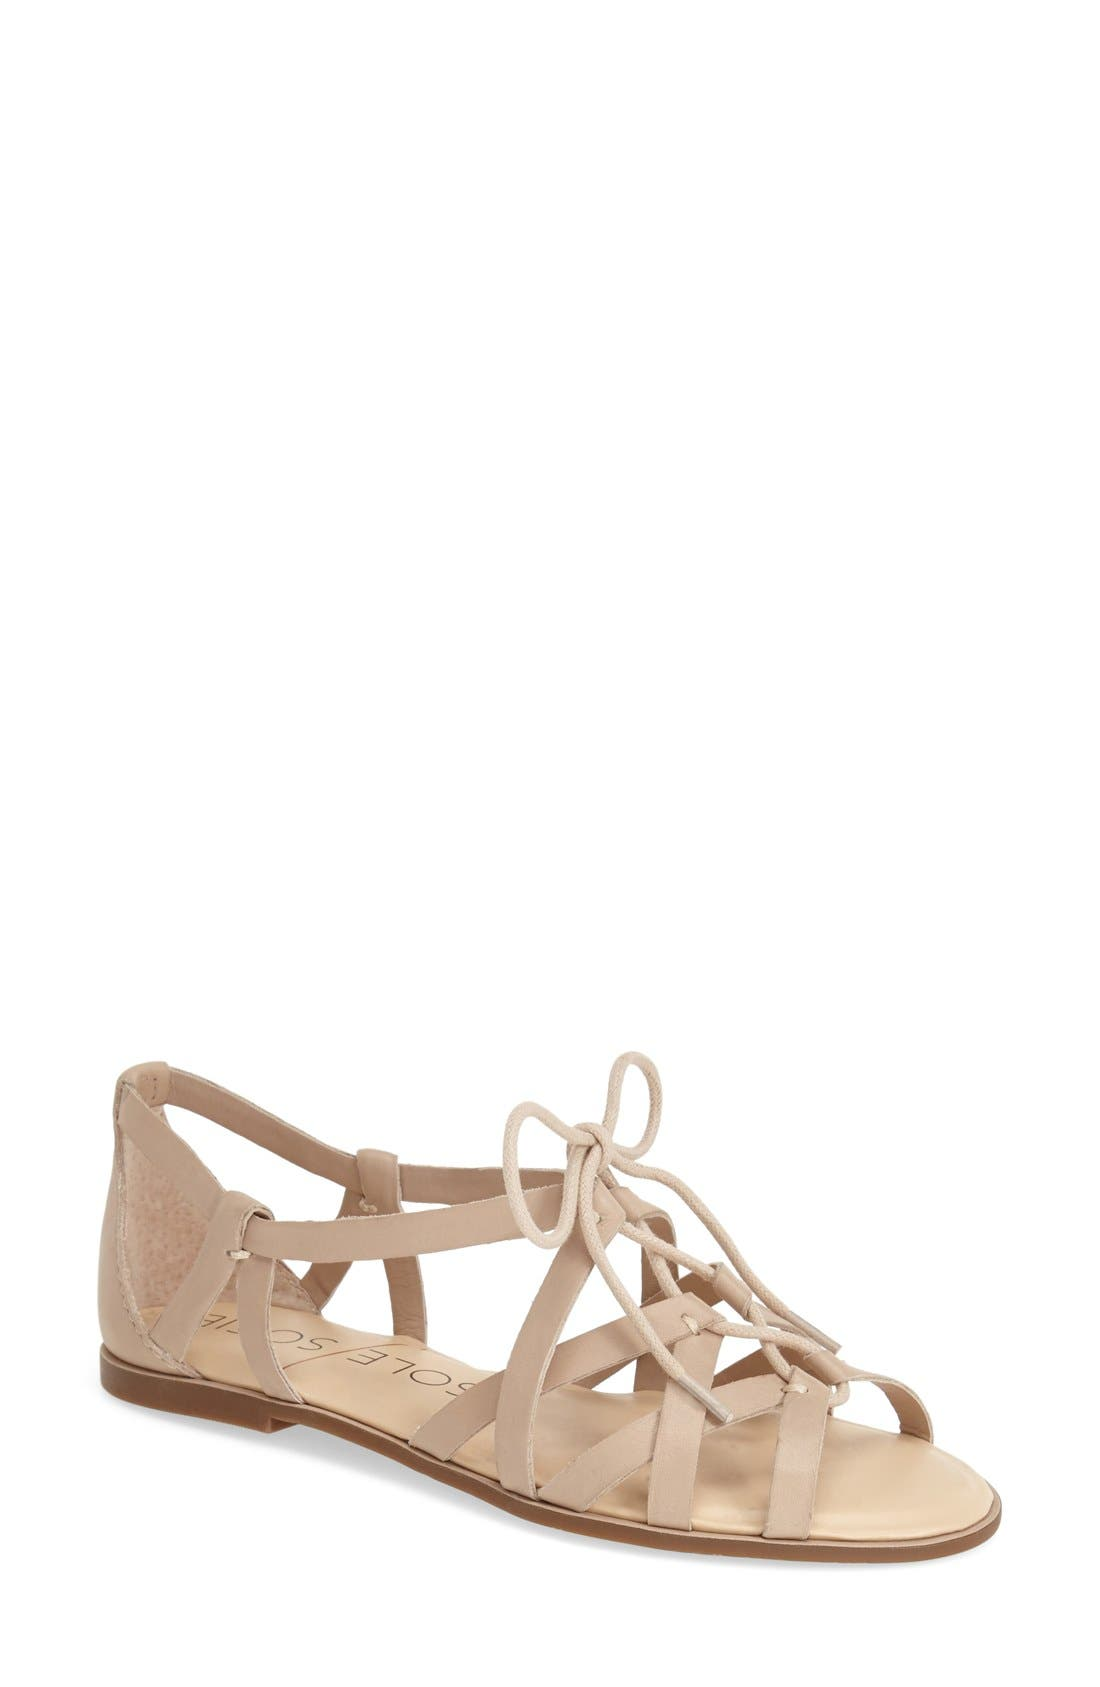 SOLE SOCIETY,                             'Gillian' Gladiator Sandal,                             Main thumbnail 1, color,                             200